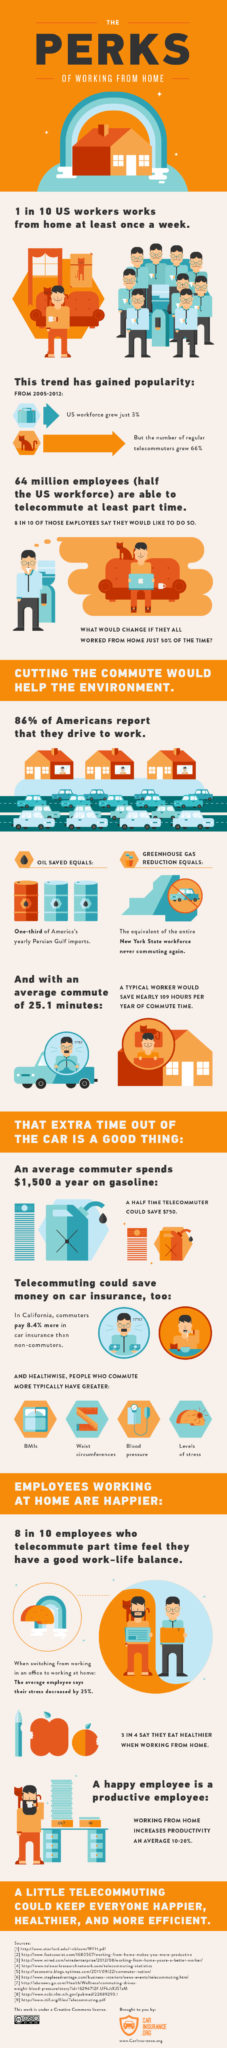 Telecommuter Infographic